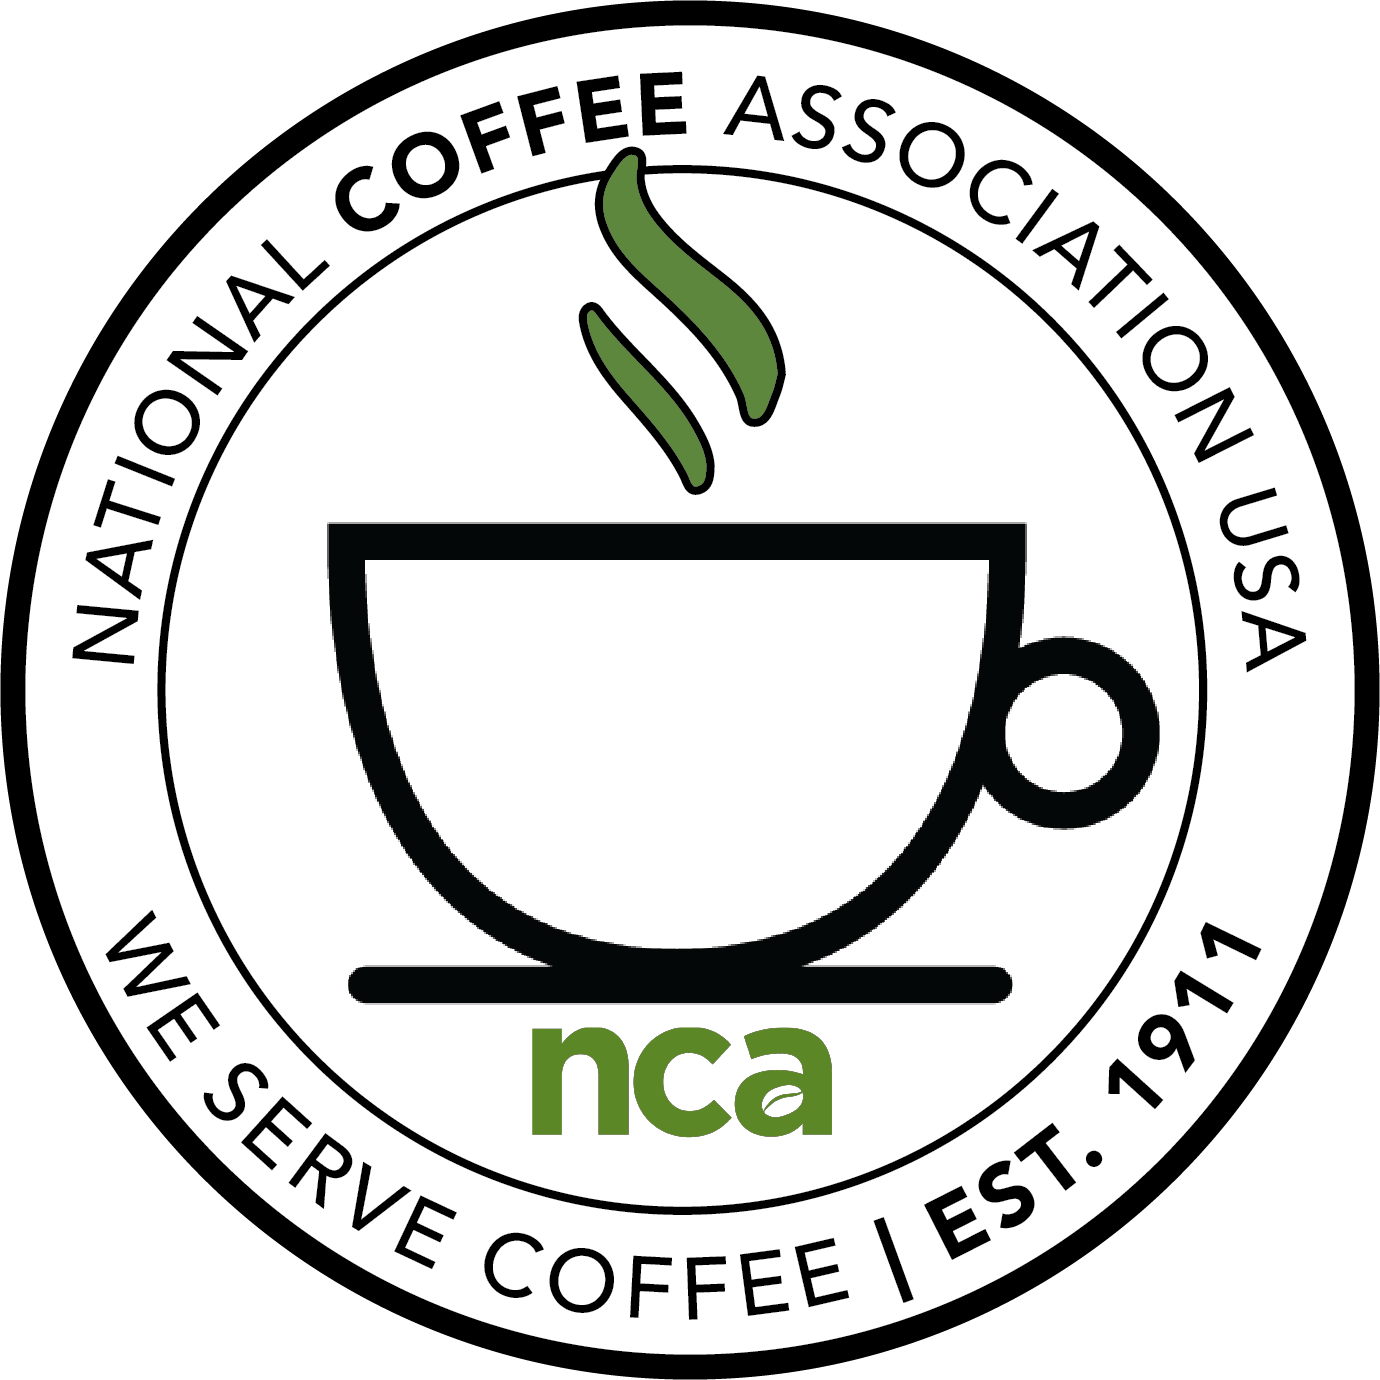 NCA We Serve Coffee